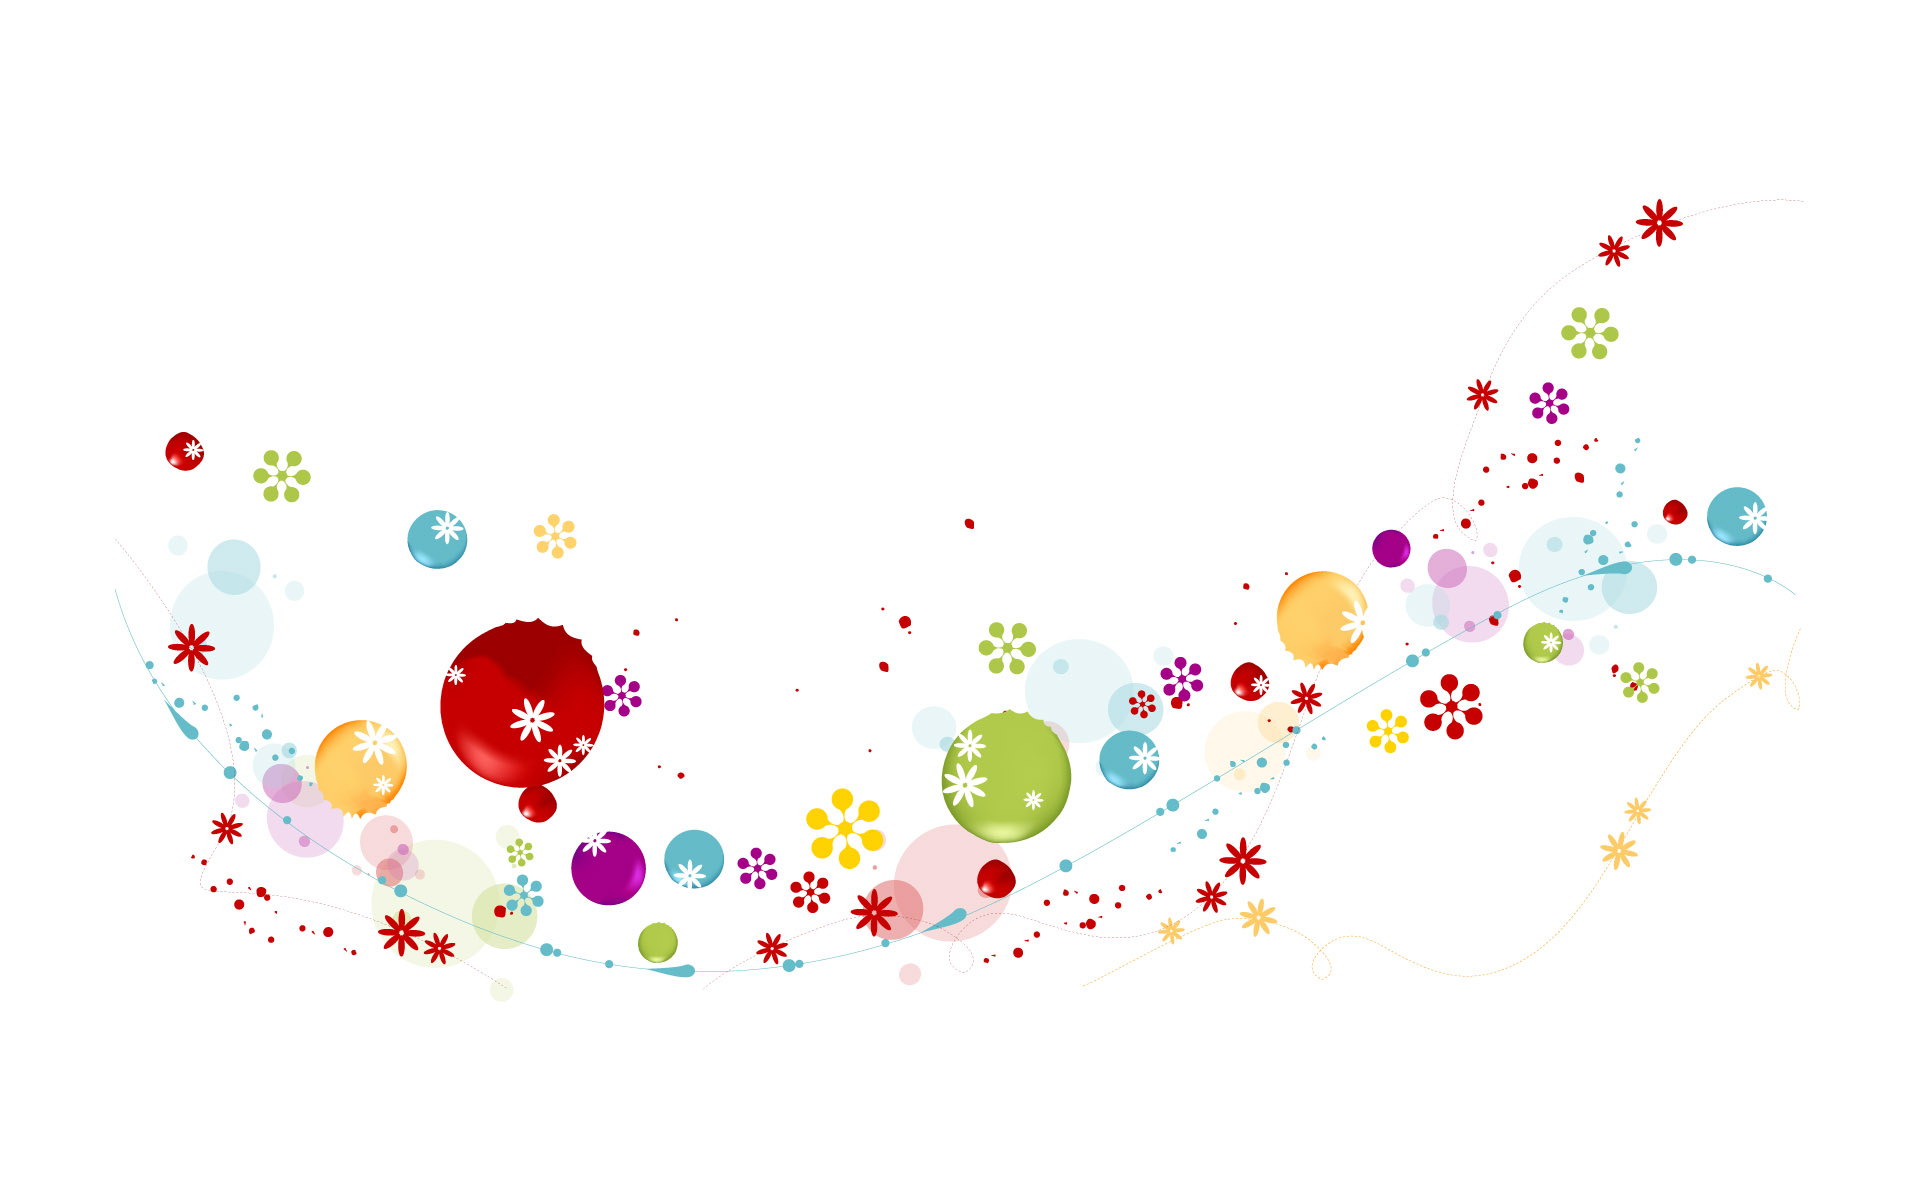 Background color 16634